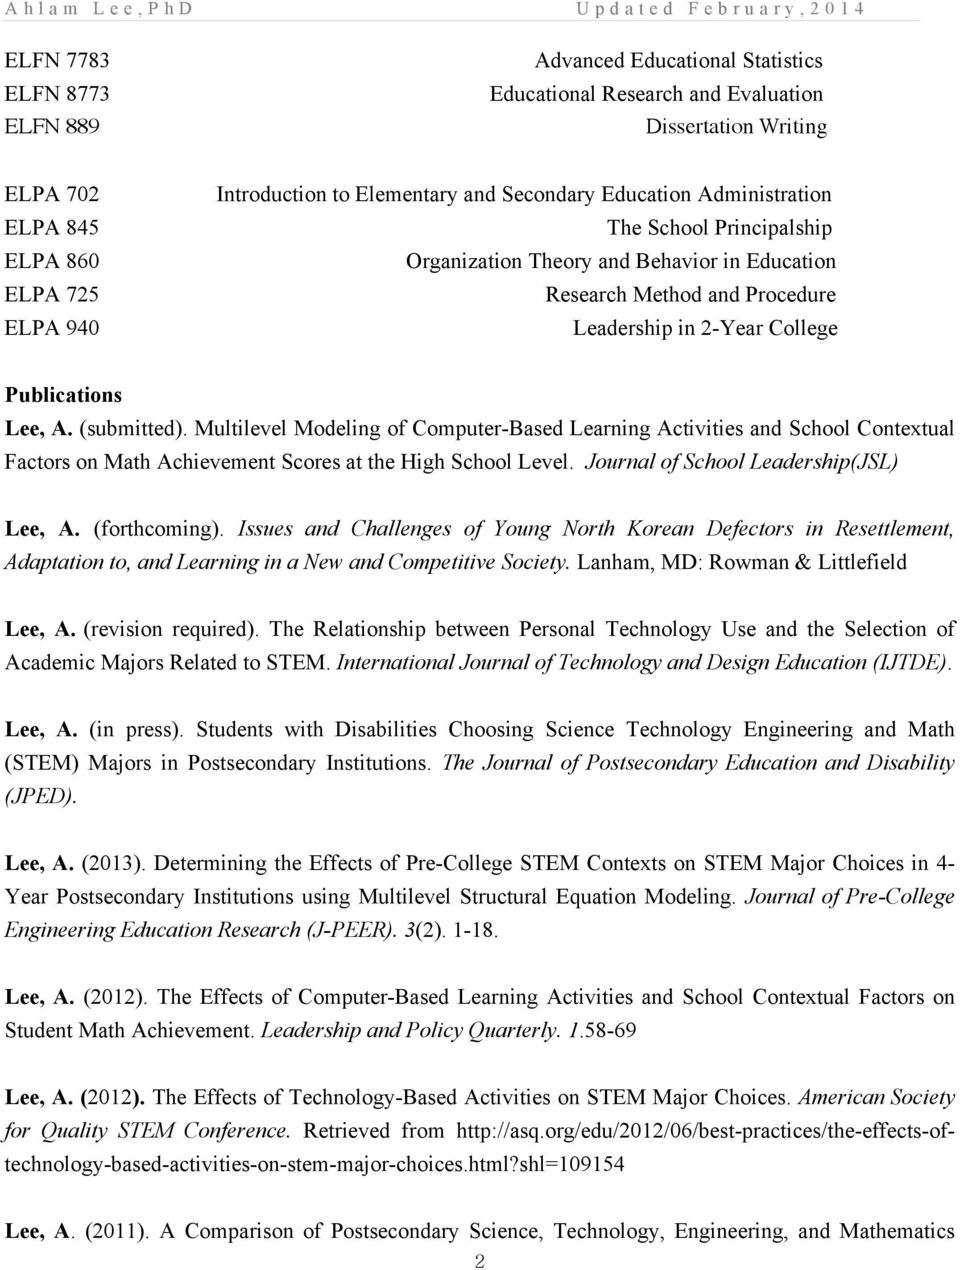 Multilevel Modeling of Computer-Based Learning Activities and School Contextual Factors on Math Achievement Scores at the High School Level. Journal of School Leadership(JSL) Lee, A. (forthcoming).